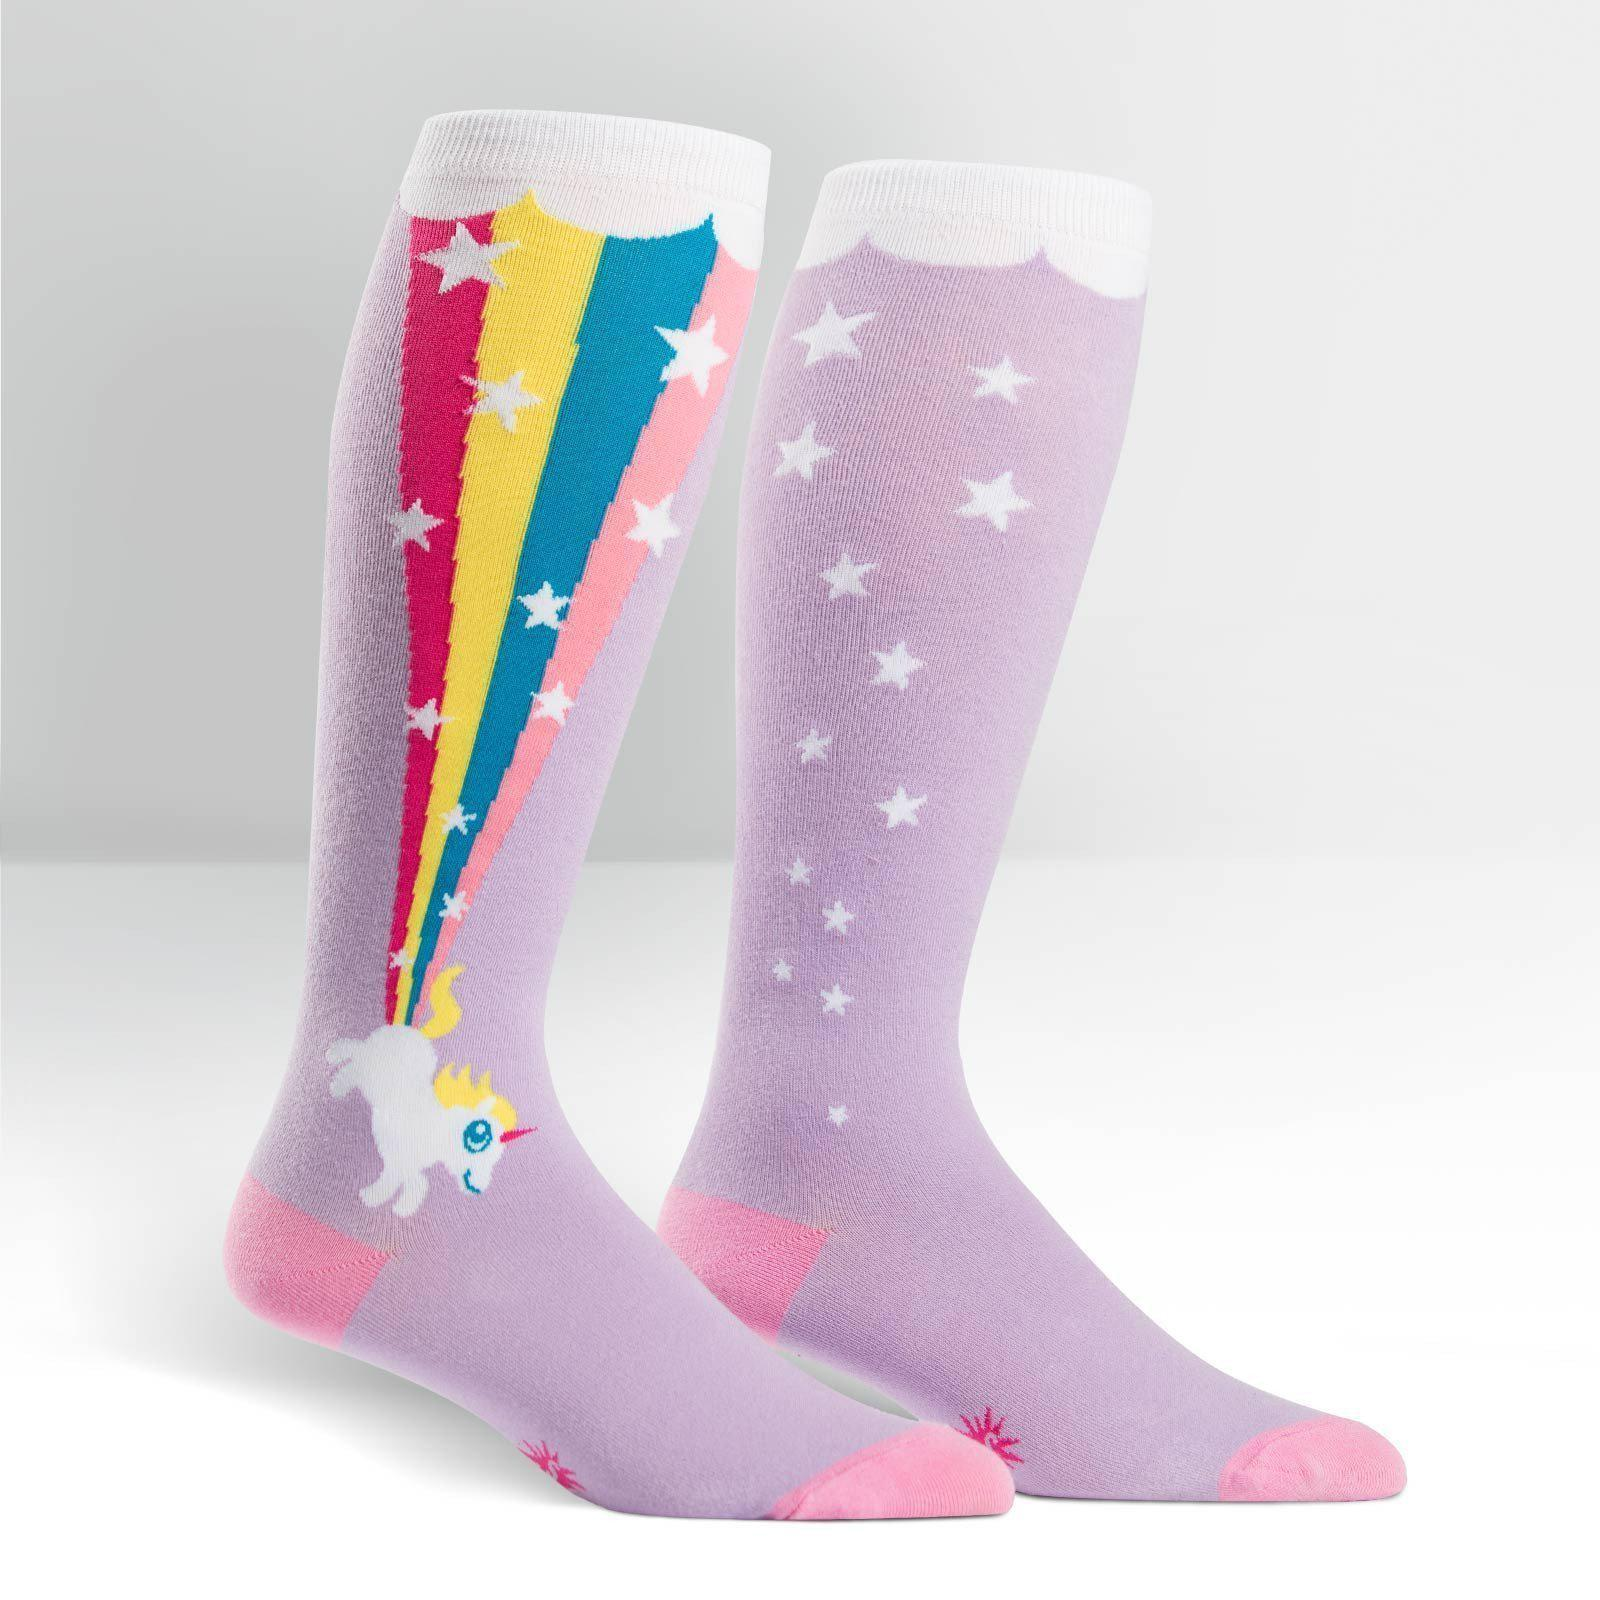 Sock It To Me - STRETCH-IT Rainbow Blast Knee High Socks | Women's - Knock Your Socks Off